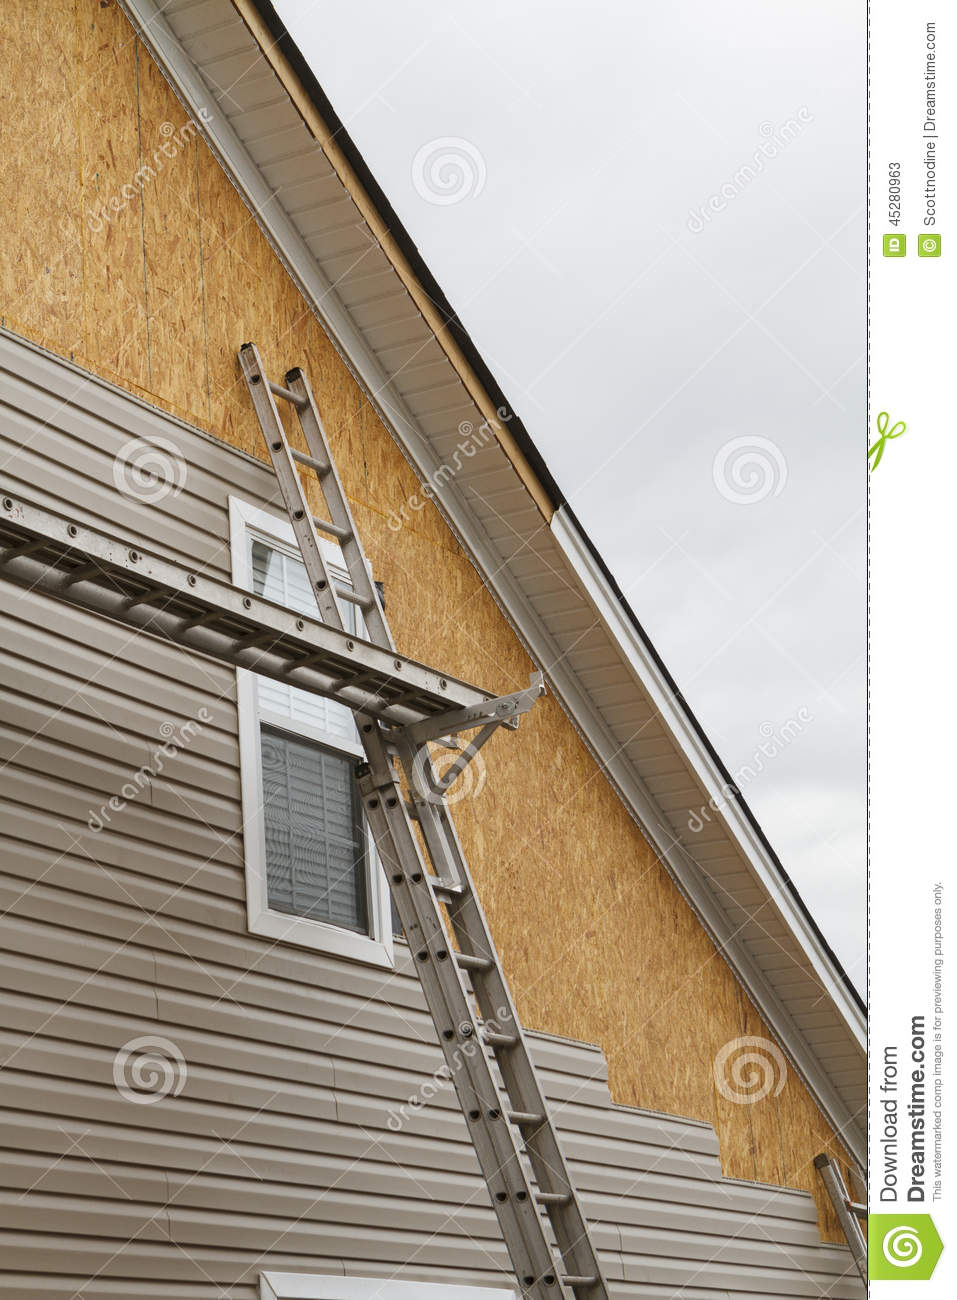 New Vinyl Siding Installation On A Home In The South Stock Photo Image 45280963